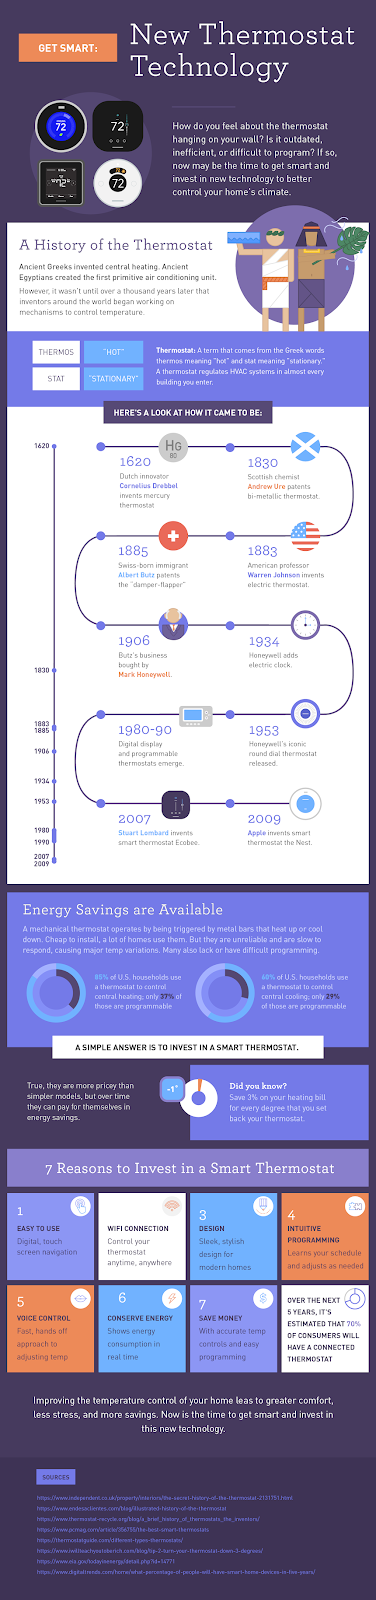 thermostat infographic